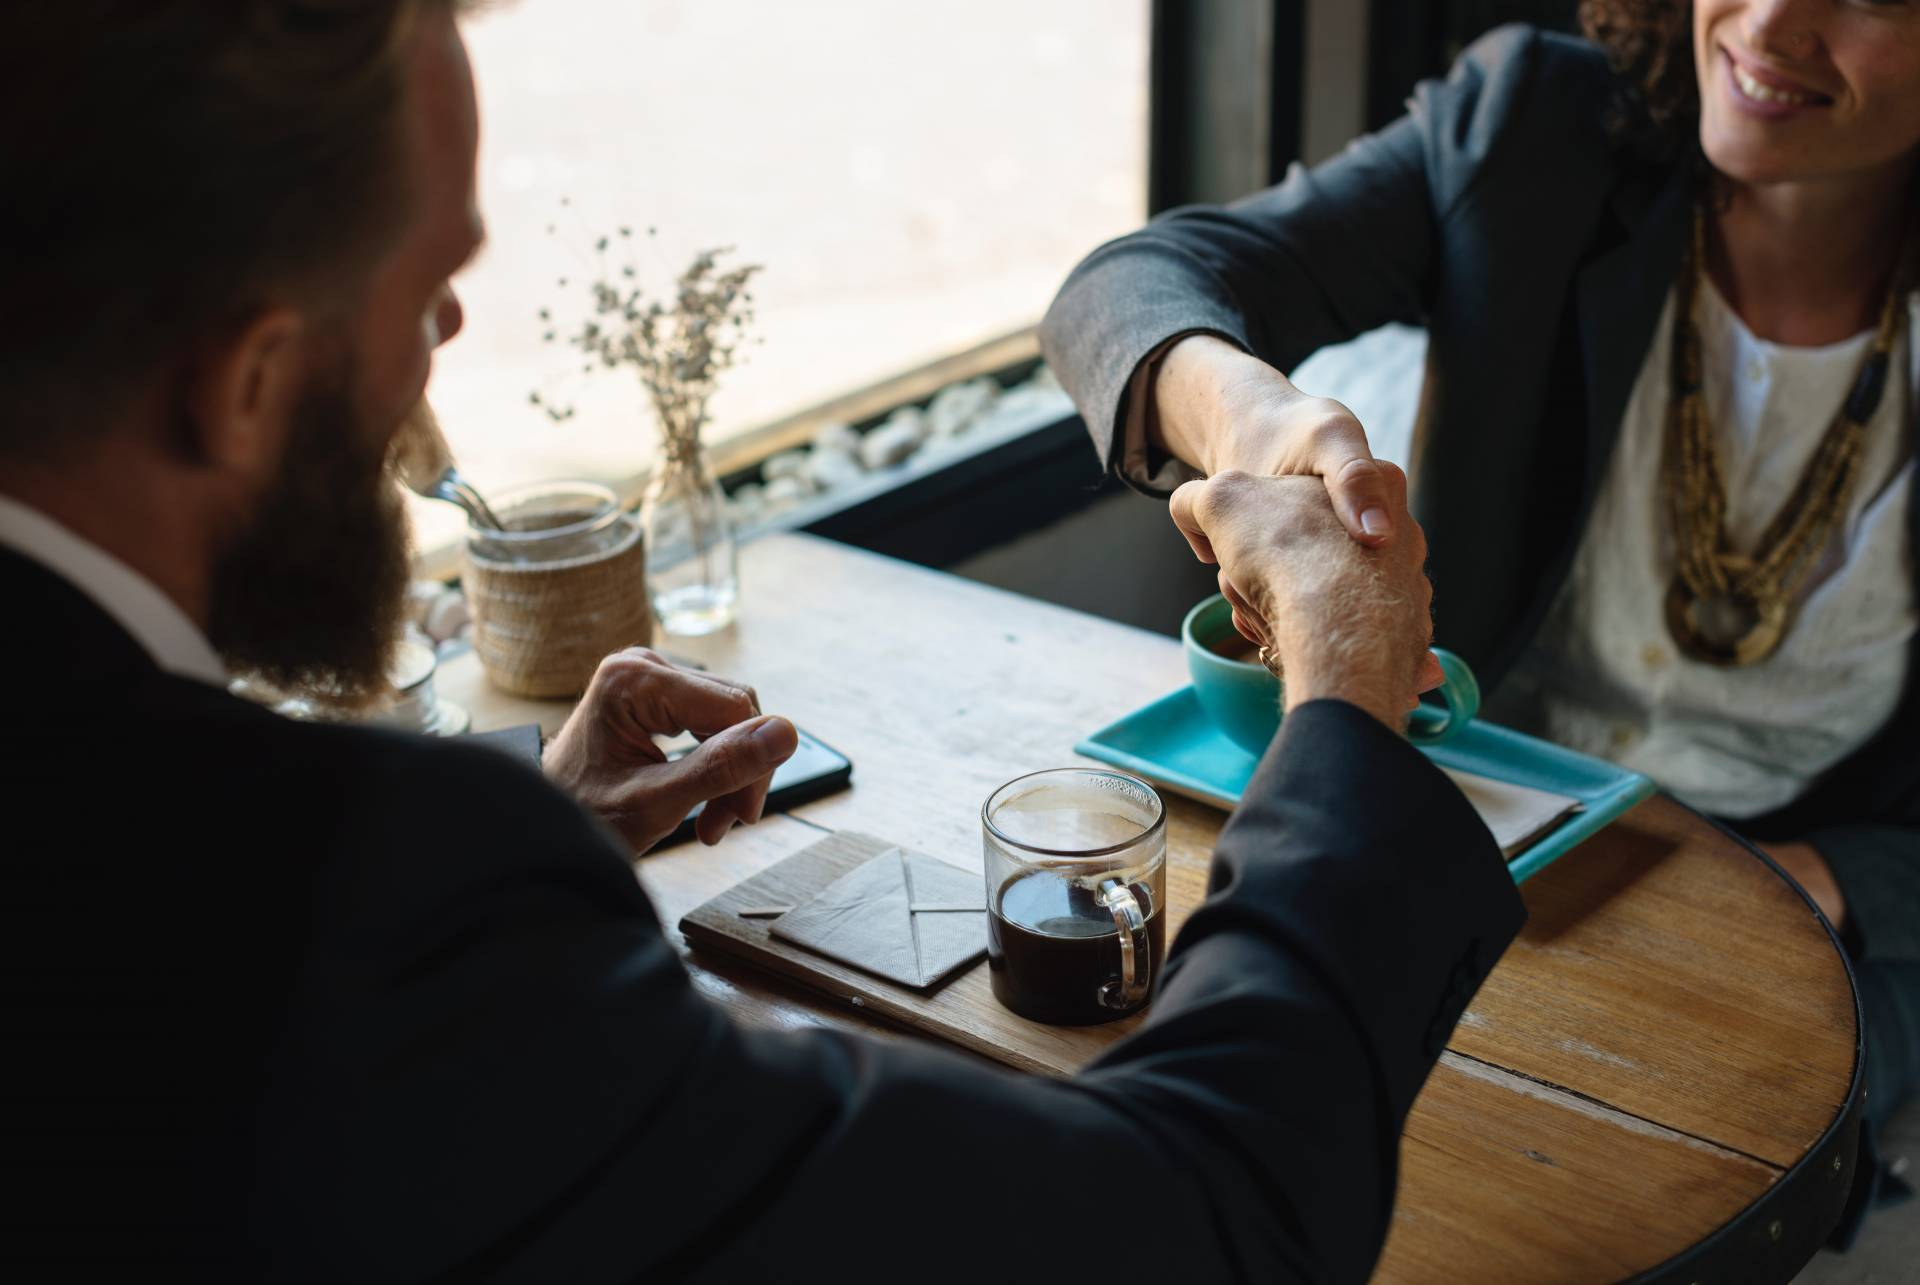 5 Steps to Outshine Your Competition In a Job Interview